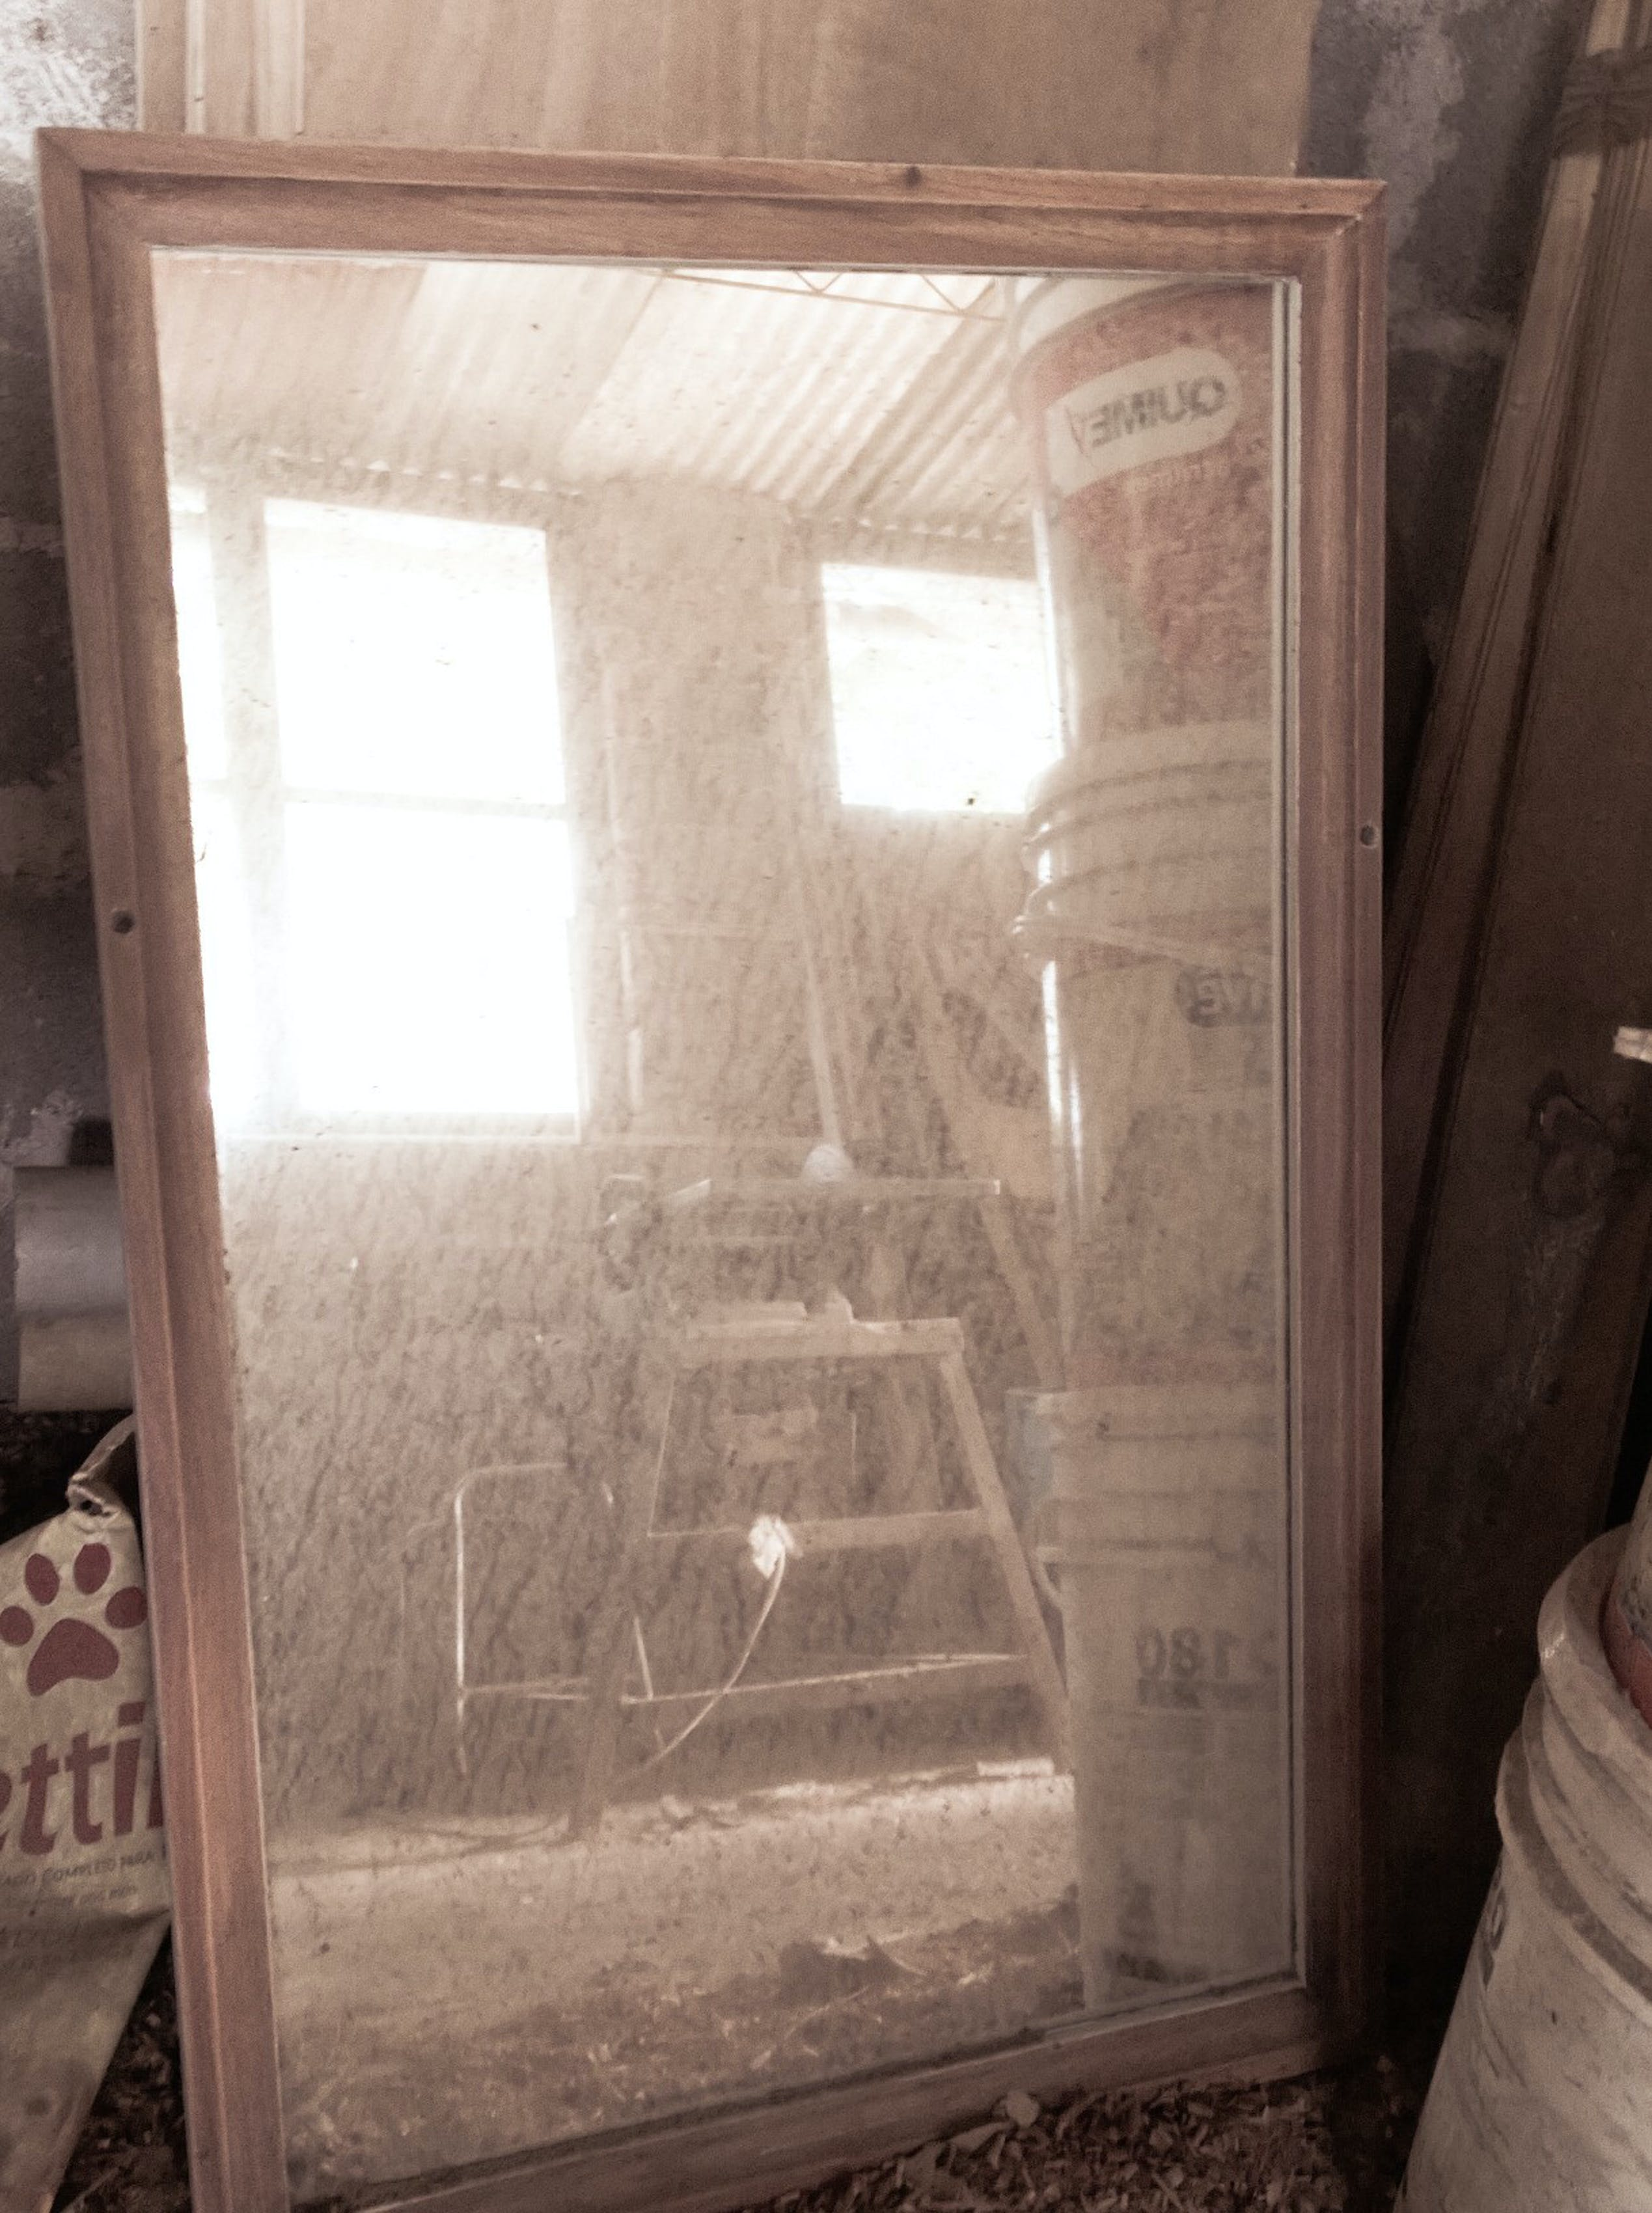 Free stock photo of carpenter, dirty, mirror, reflection